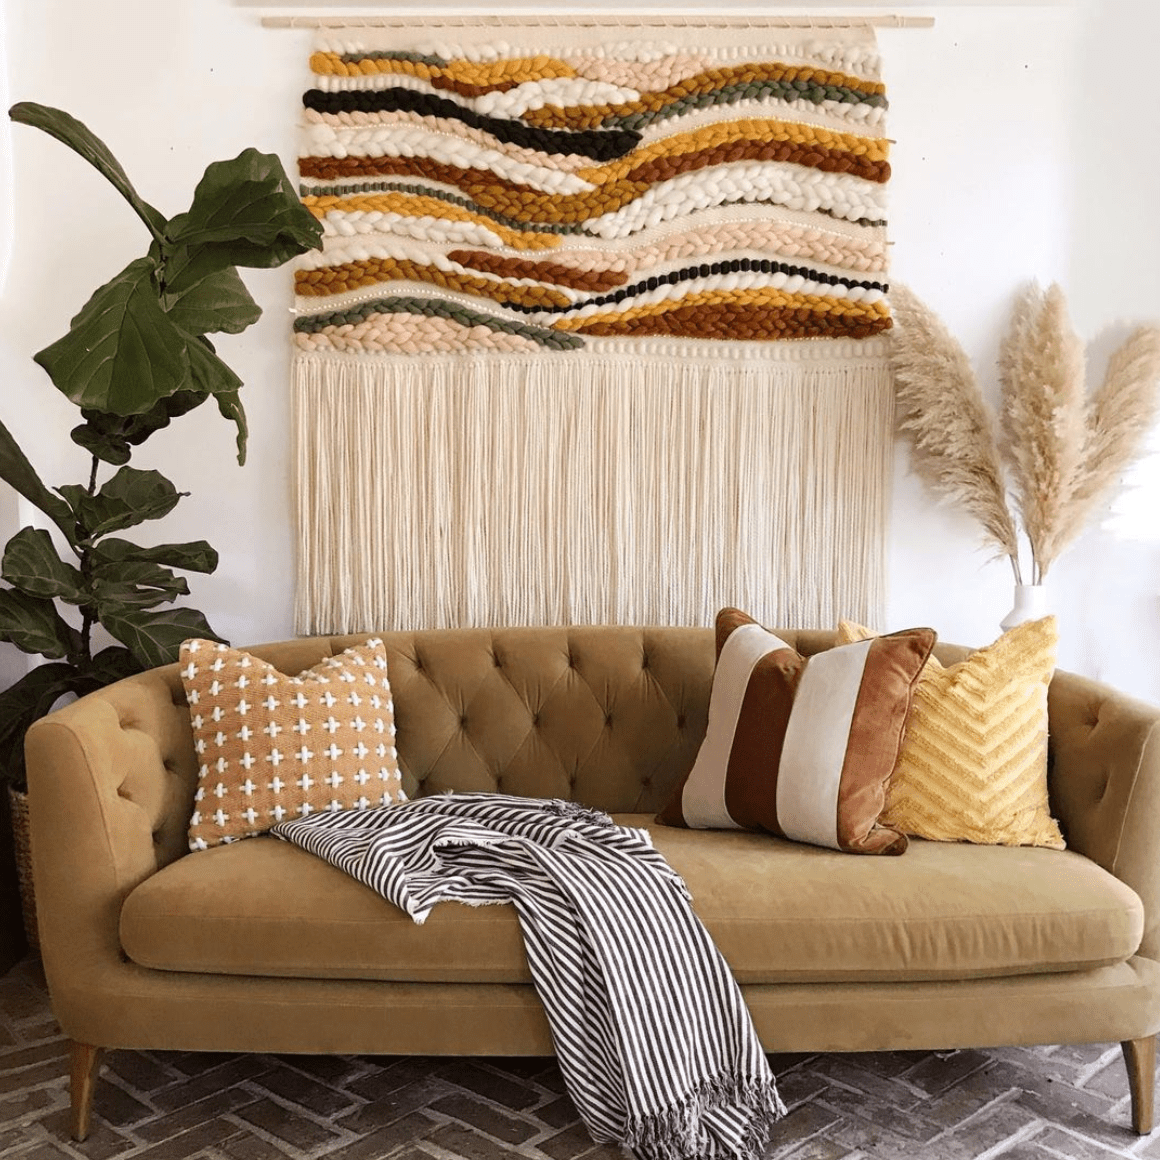 A large weaving hanging over a couch.